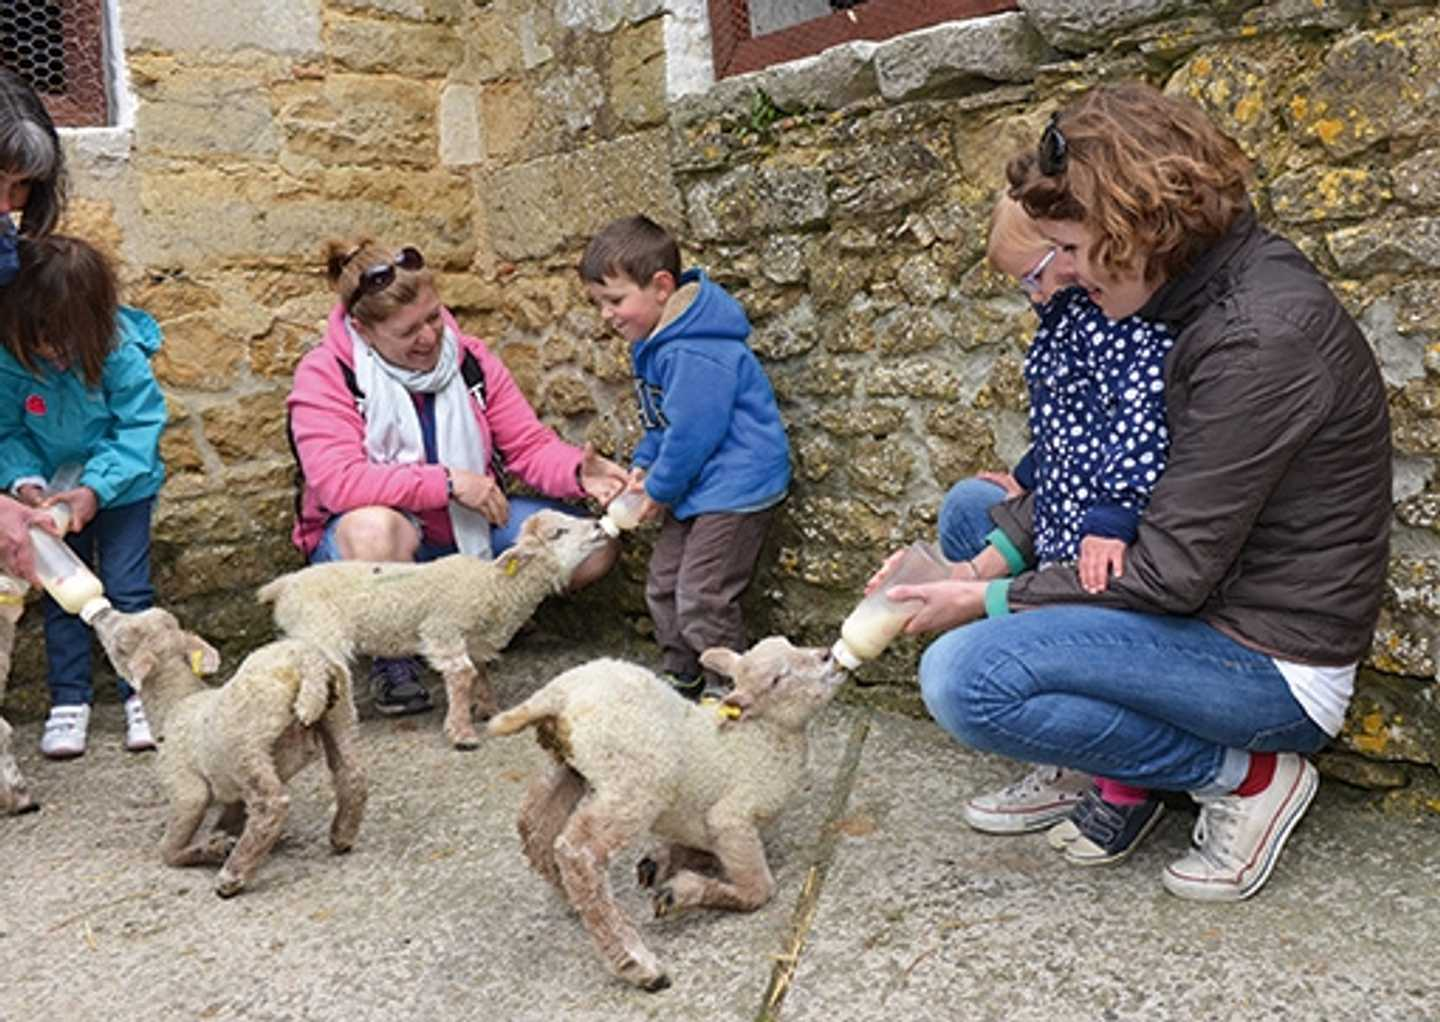 Visitors bottle feeding lambs